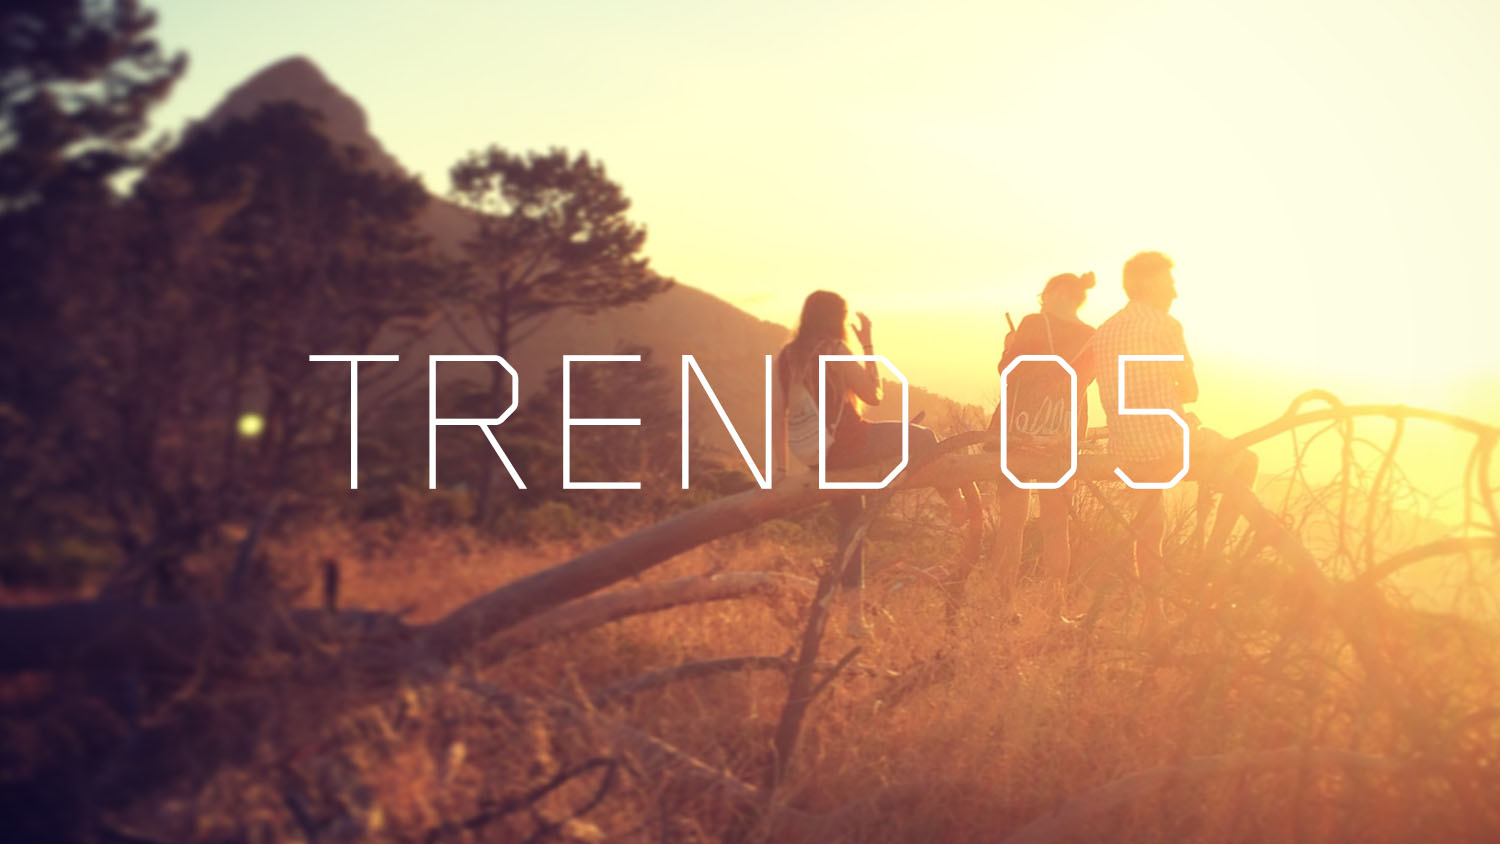 Trendreport 5 digitale Marketing Trends 2020 - 2022, Trend 5